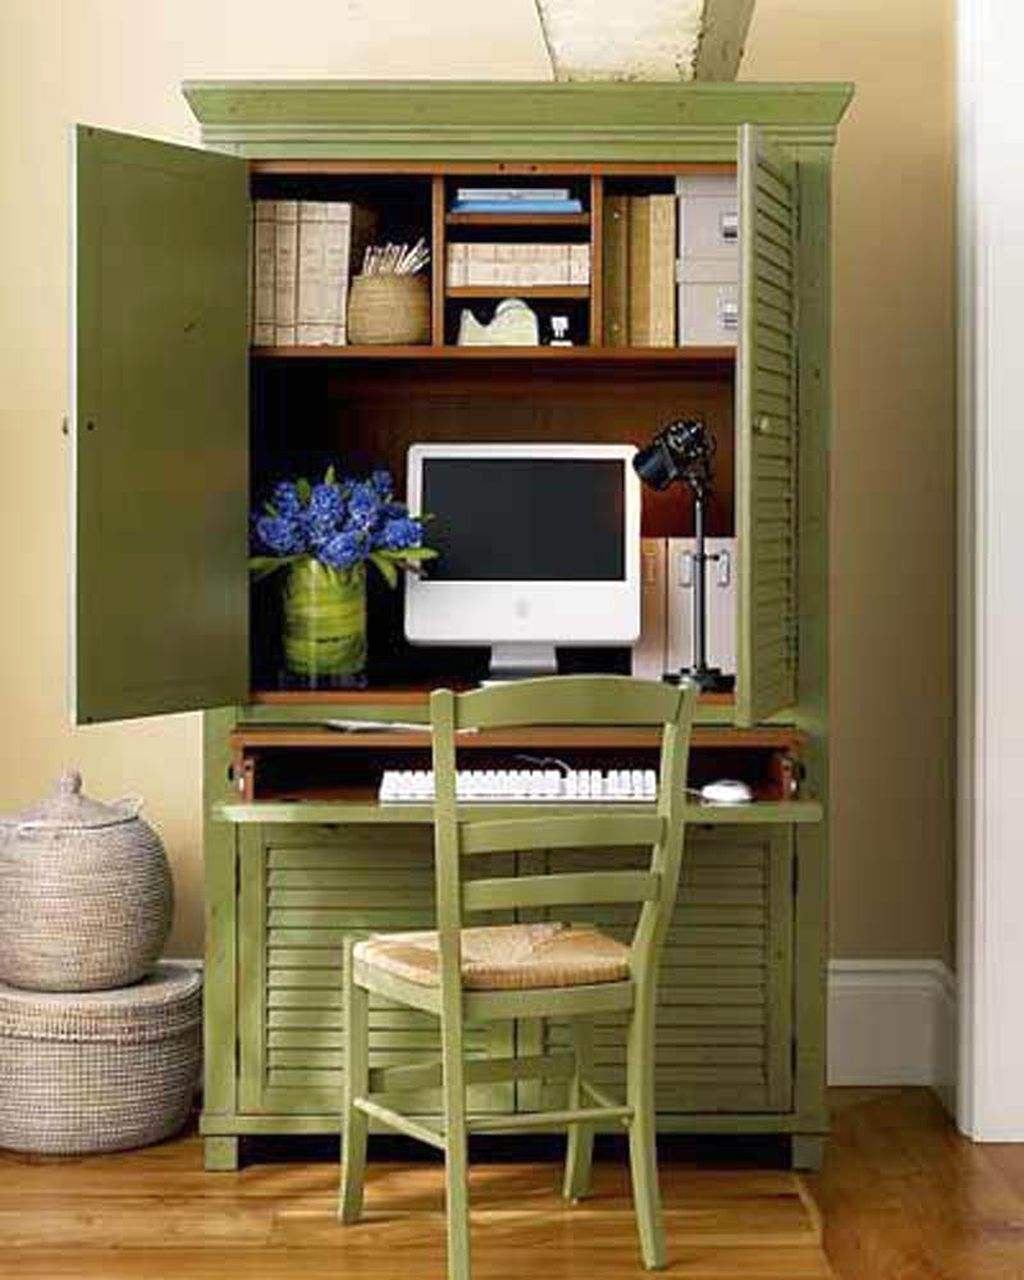 Home Office Space Ideas: Green Cupboard Home Office Design Ideas For Small Spaces